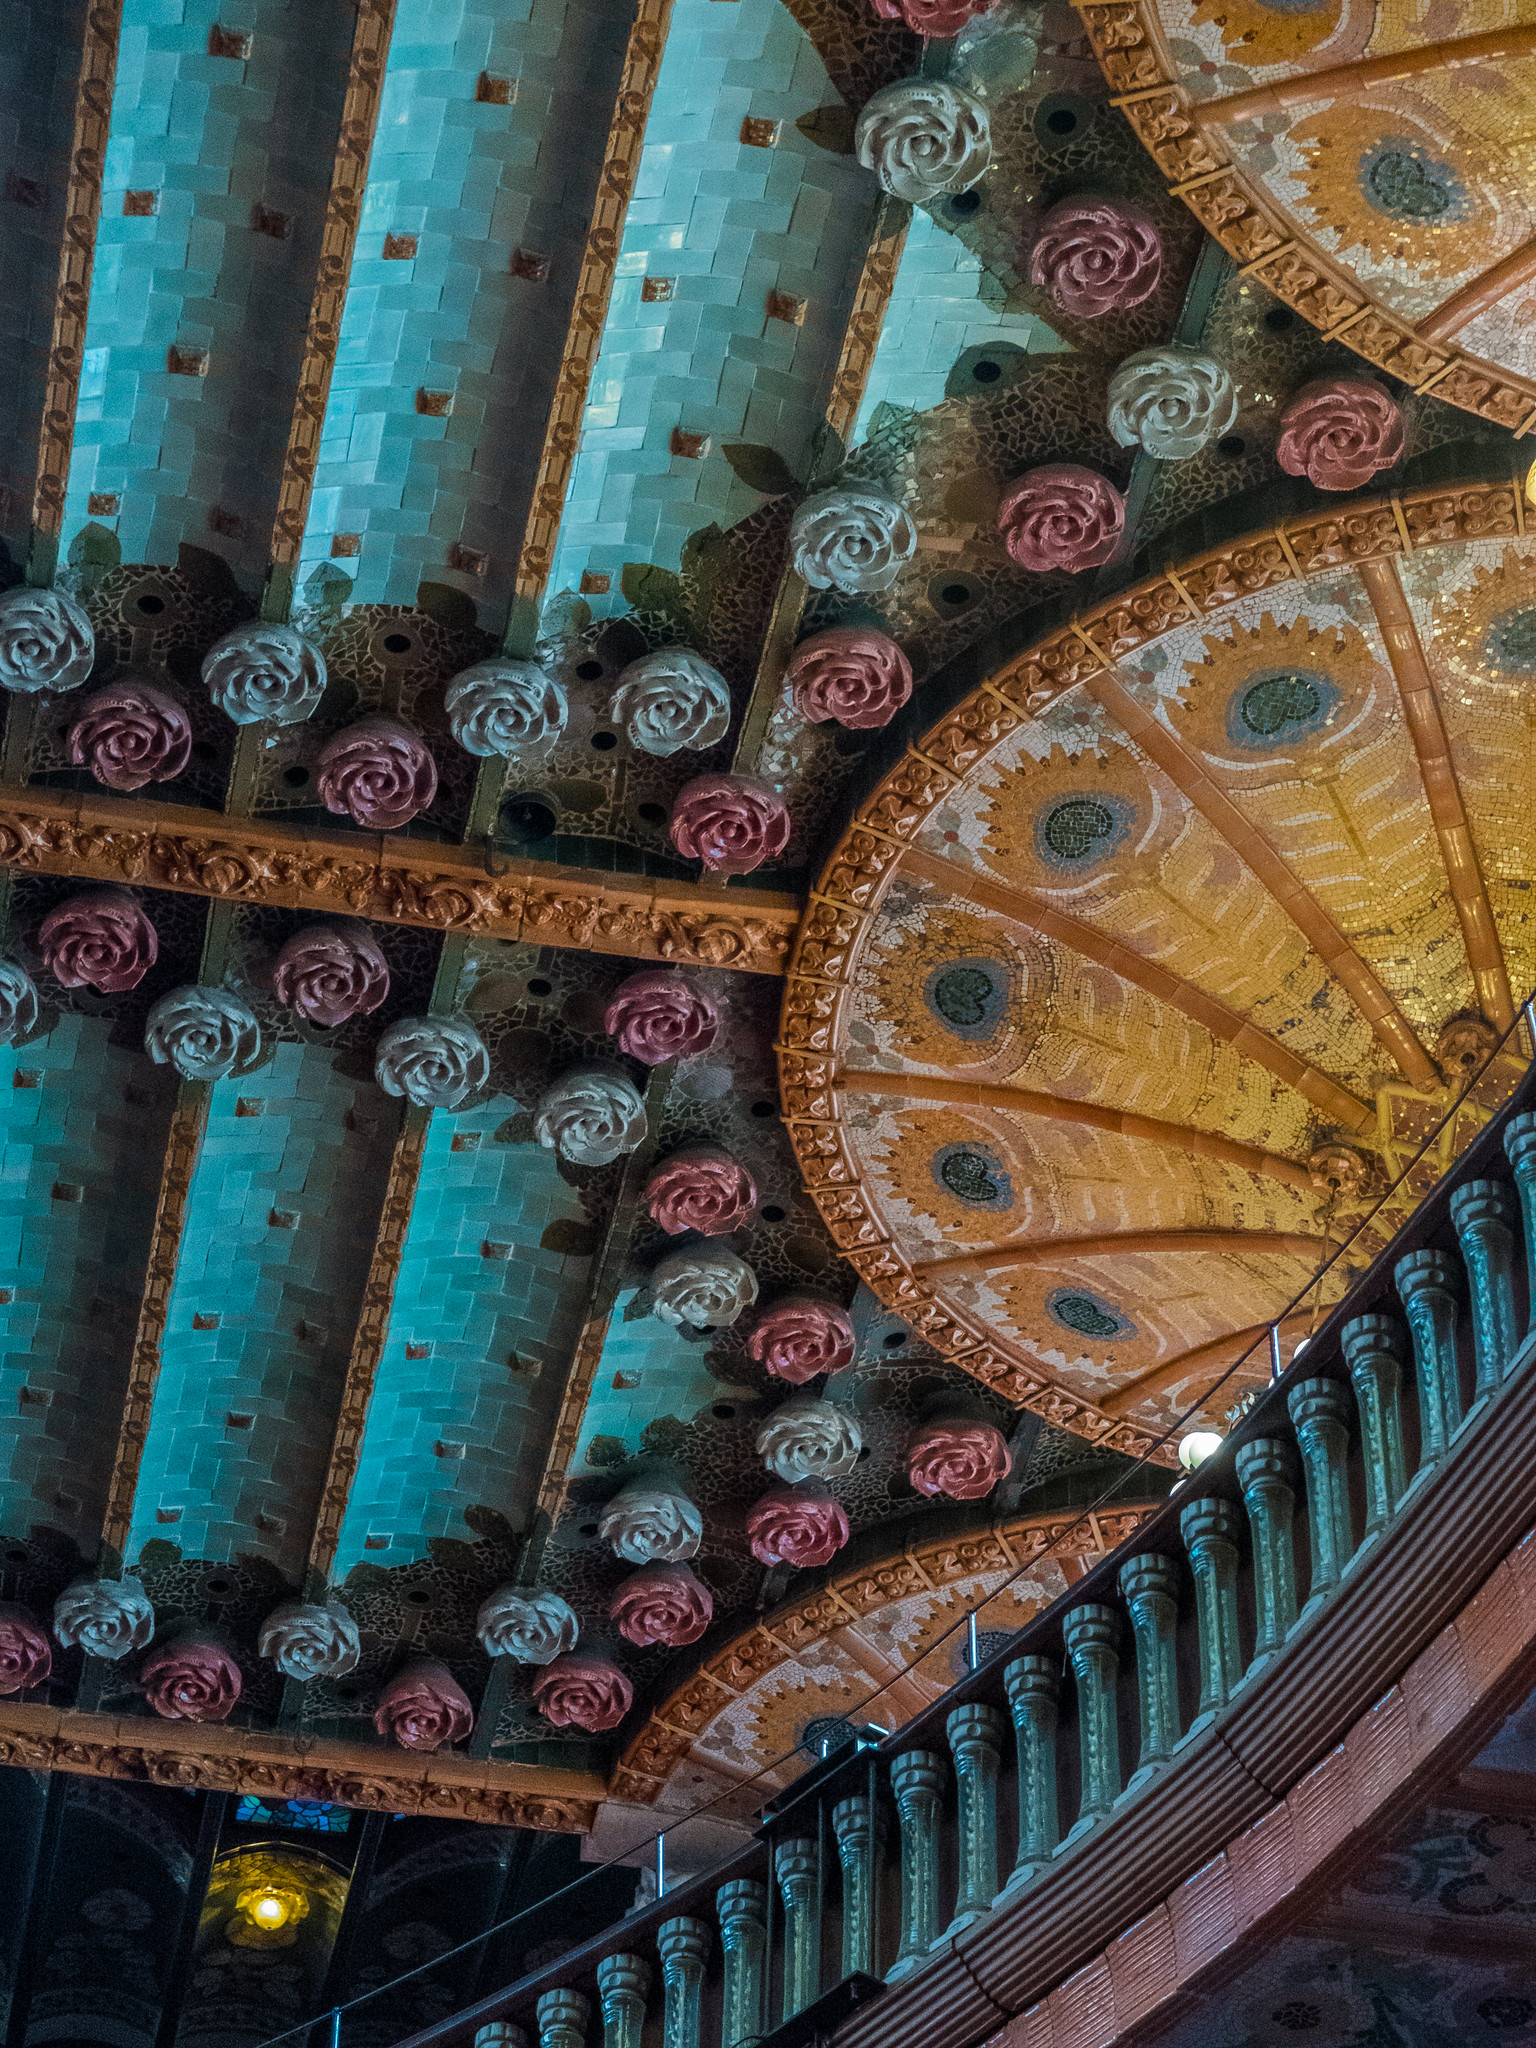 The Ultimate Guide to Palau de la Música Catalana, the Most Beautiful Concert Hall in the World